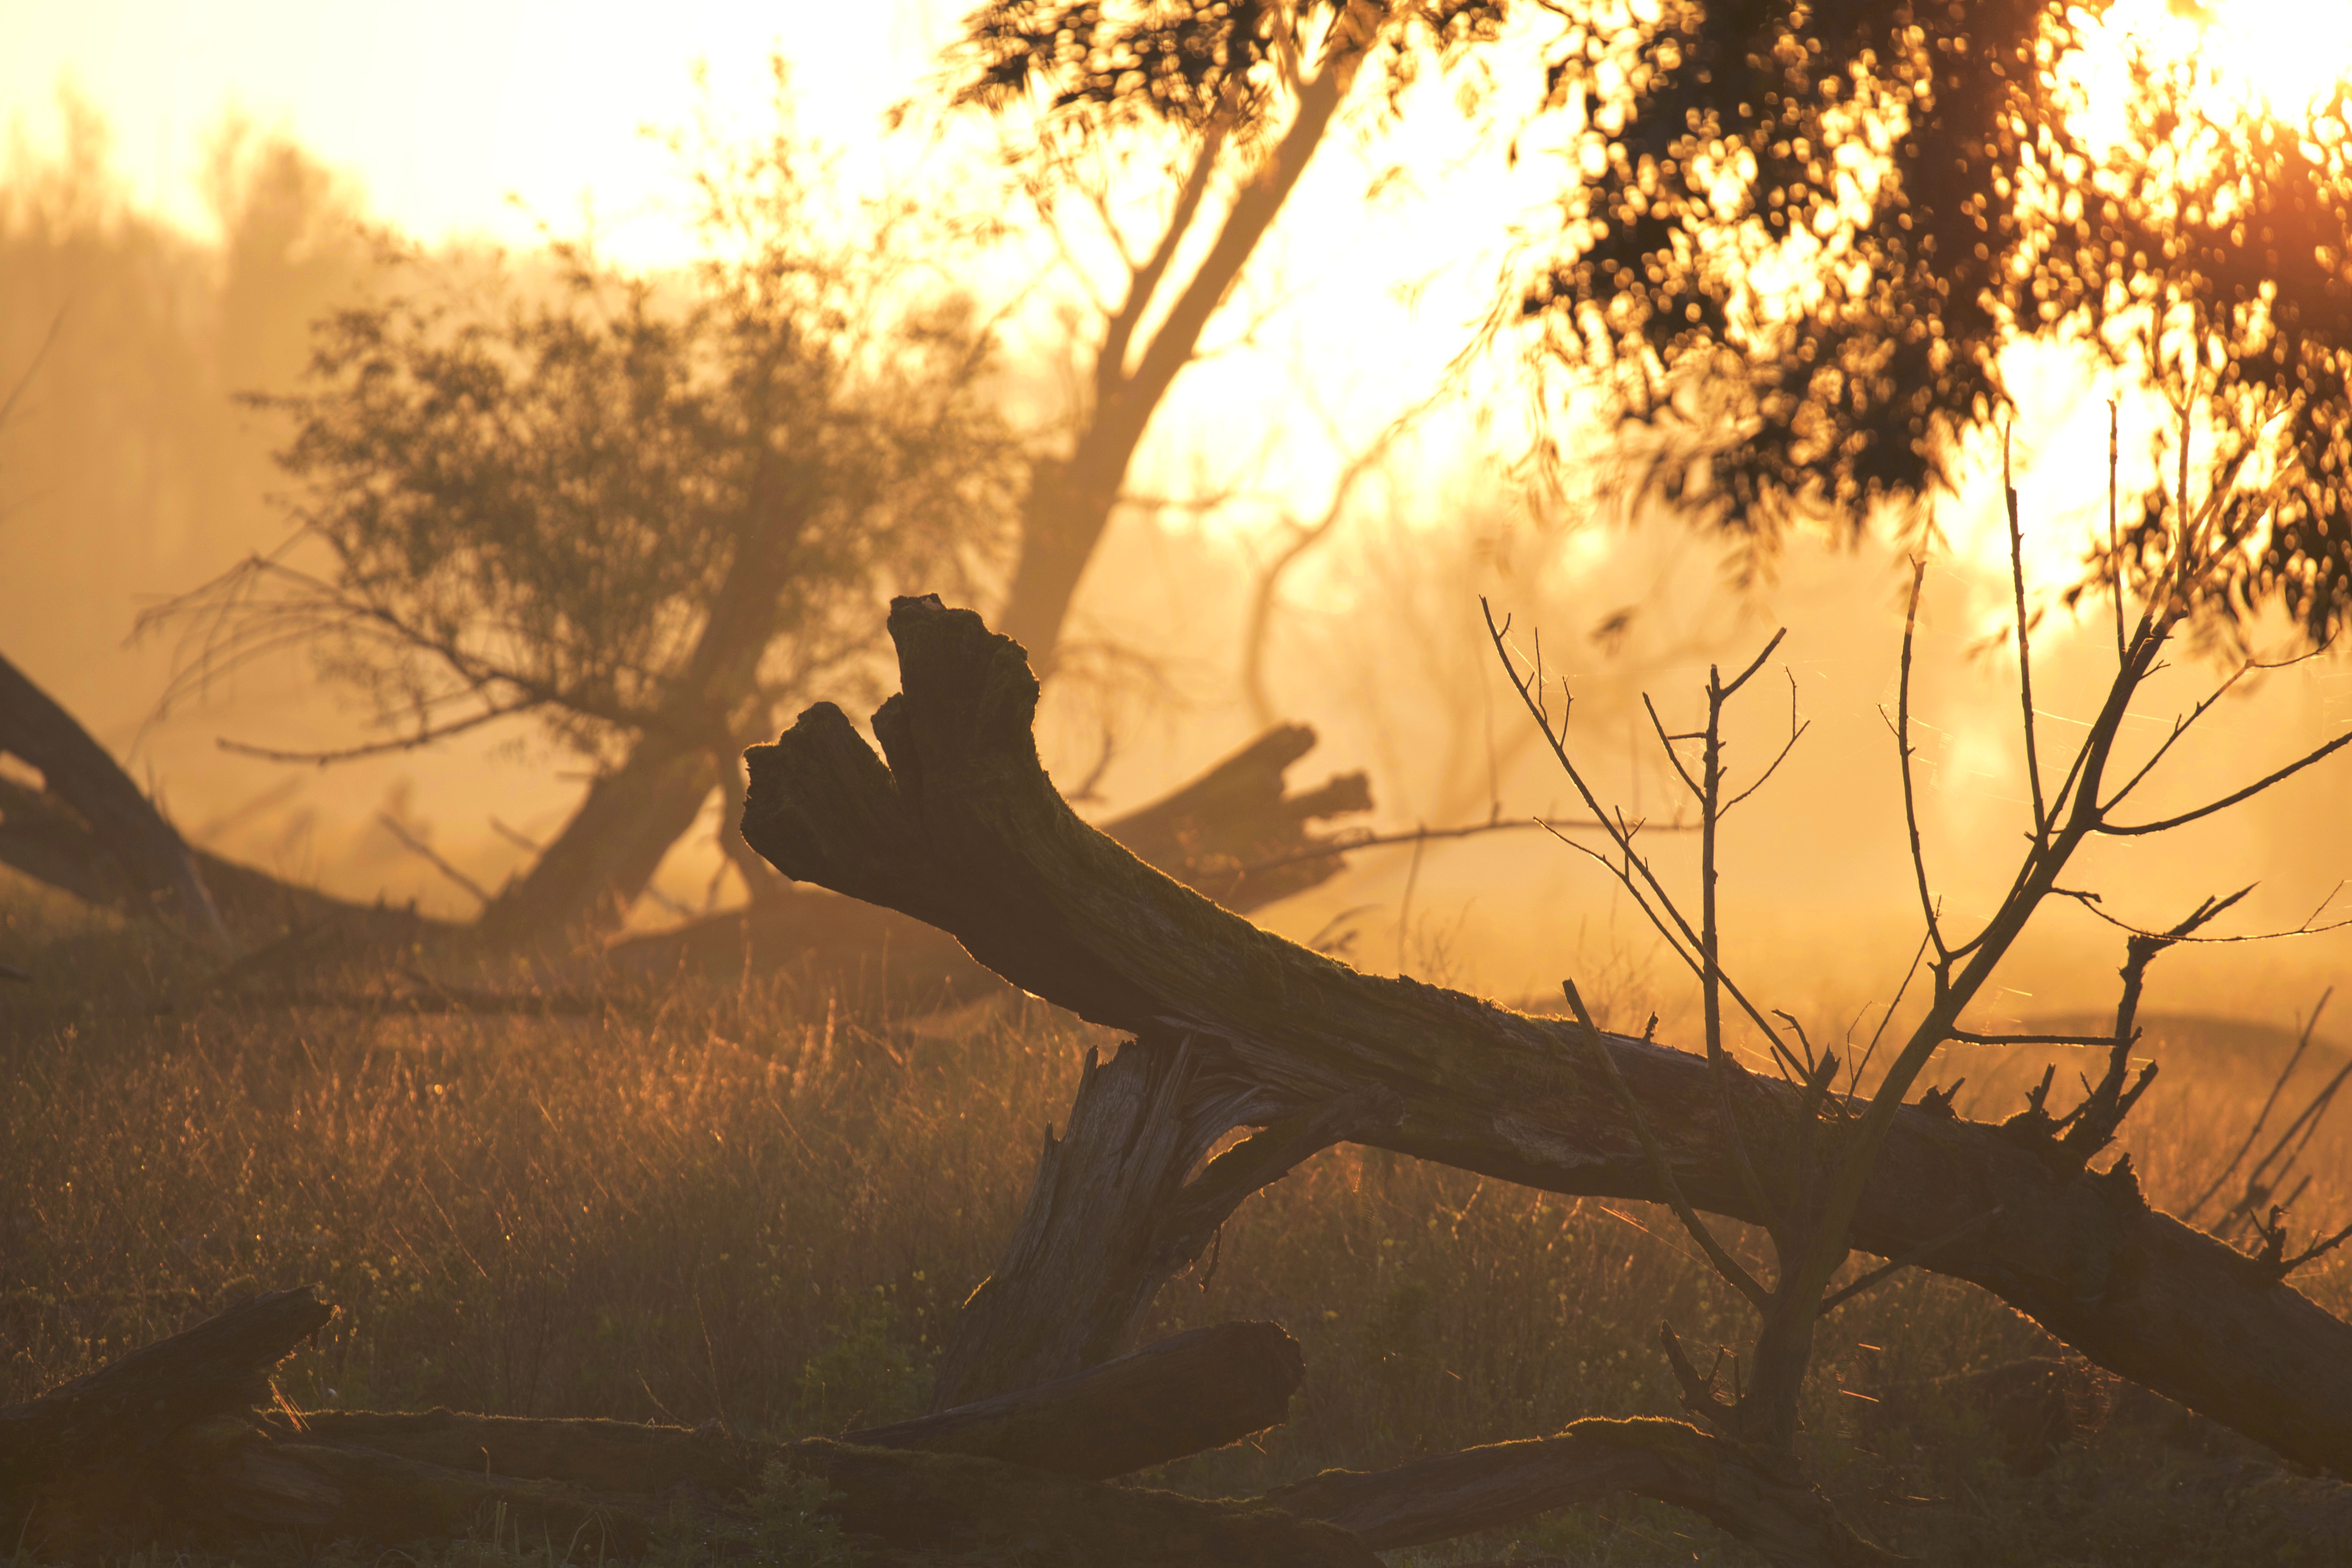 Brown Tree Trunk on Grass during Sunset, Forest, Nature, Sunrise, Sunset, HQ Photo